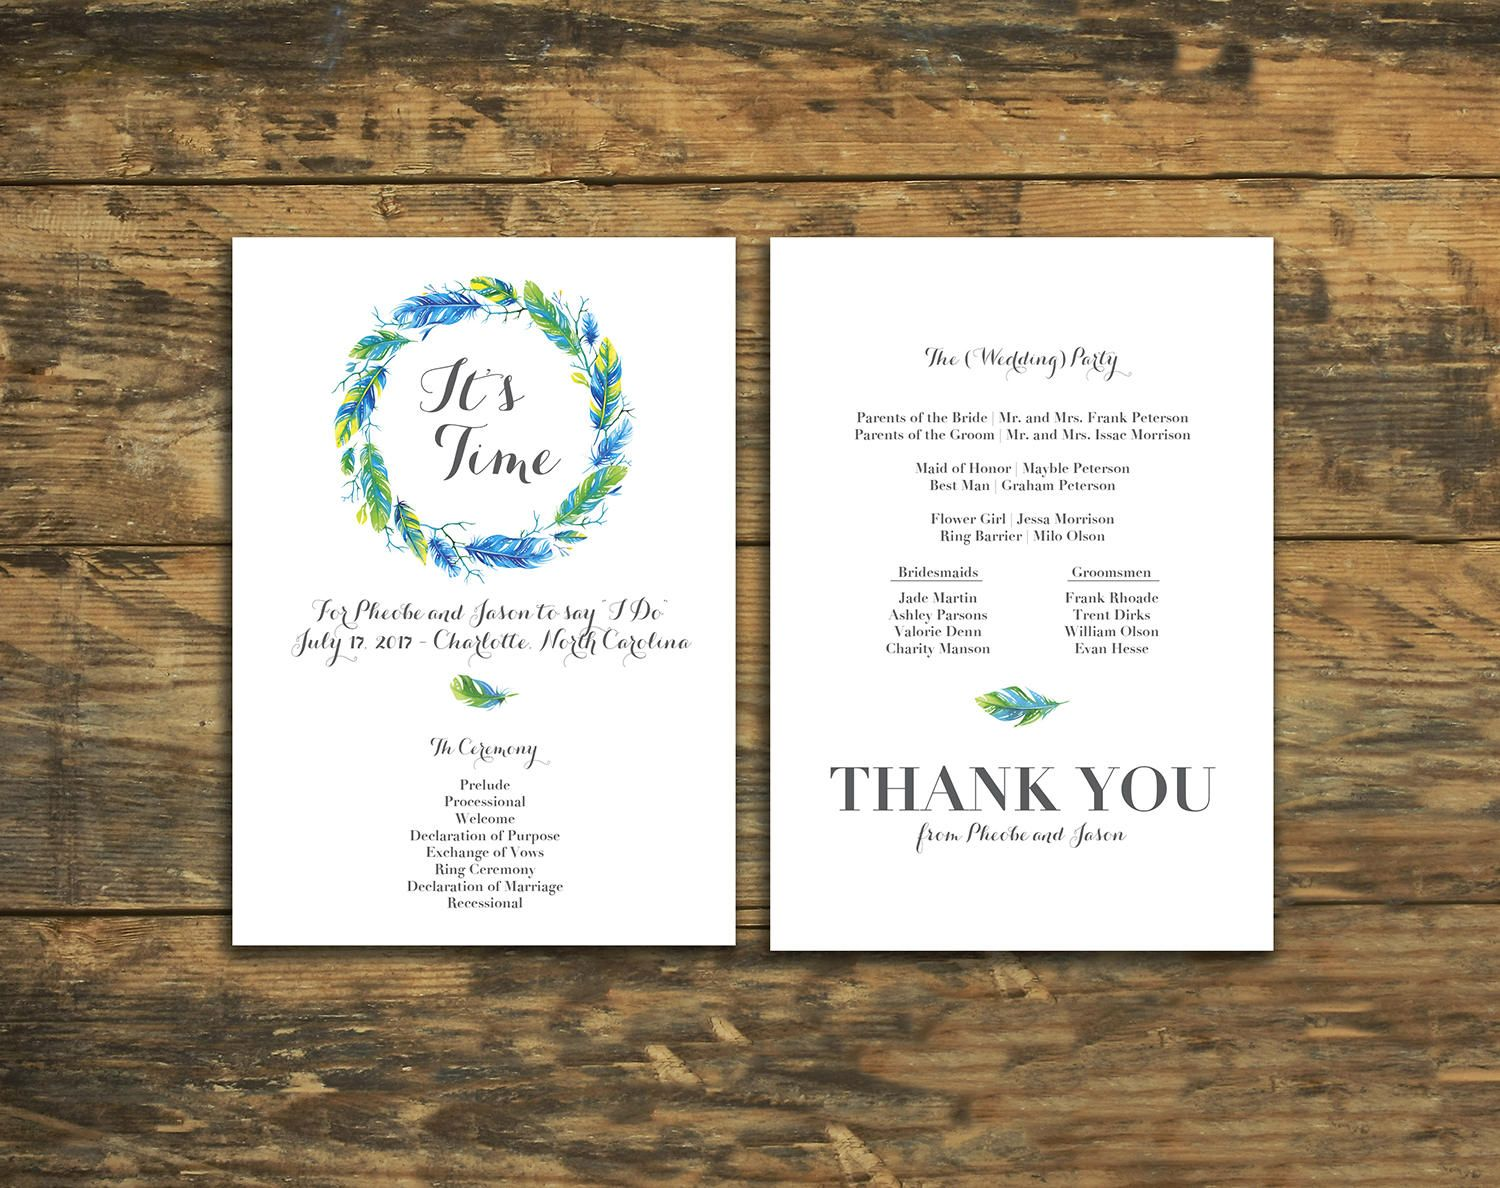 Bold Blue Feathers Design Flat Wedding Program Marriage Ceremony Programs By Ivoryisledesigns On Etsy